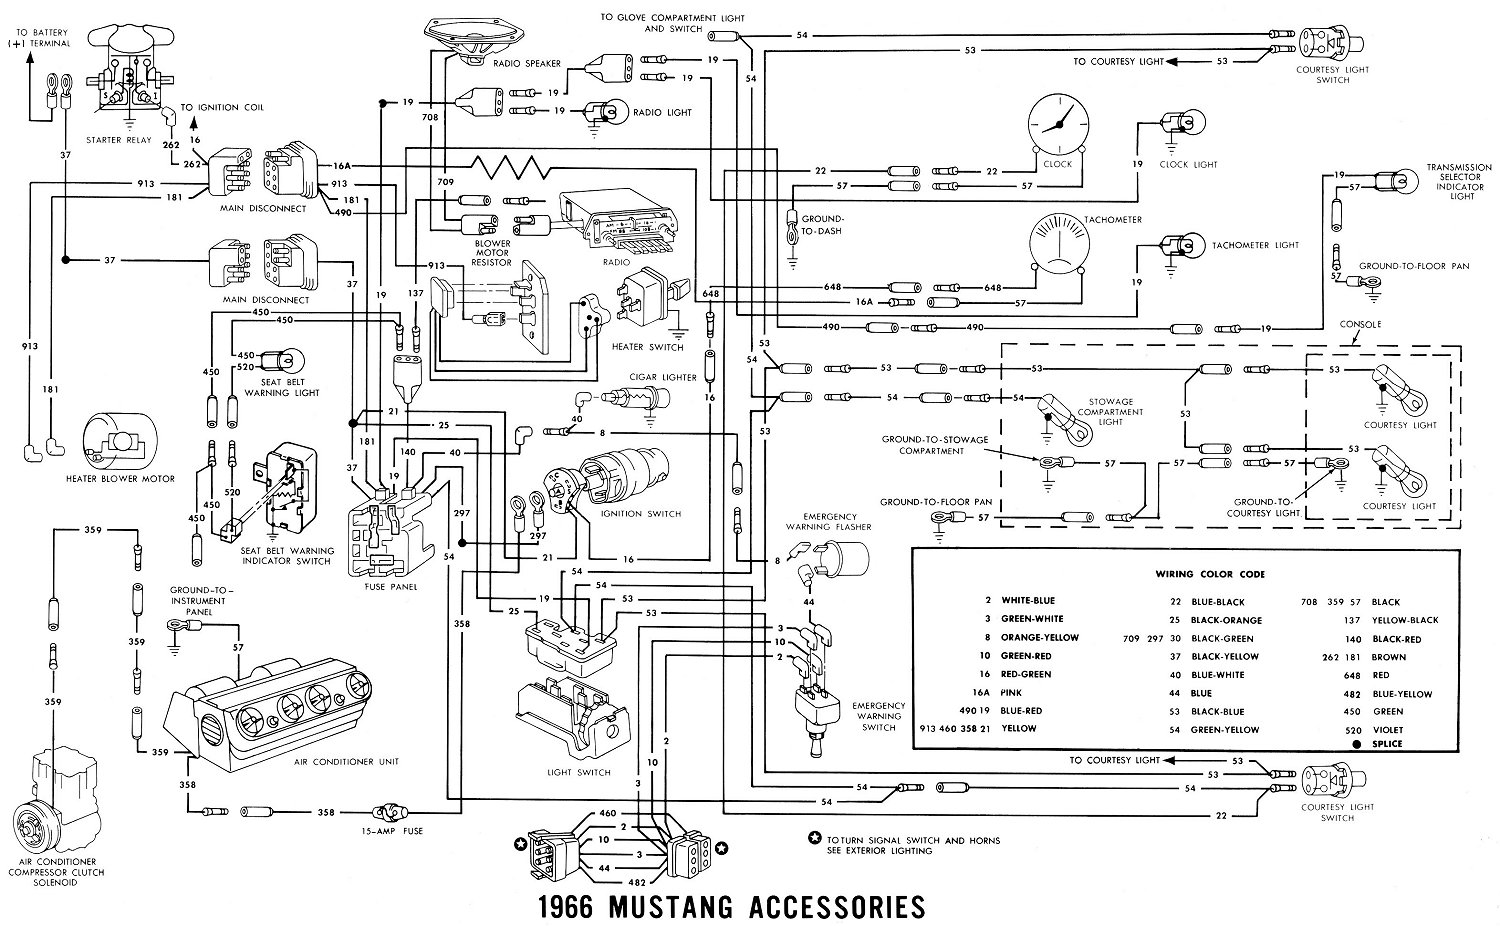 1966 Mustang Wiring Diagrams on 1965 chevy truck